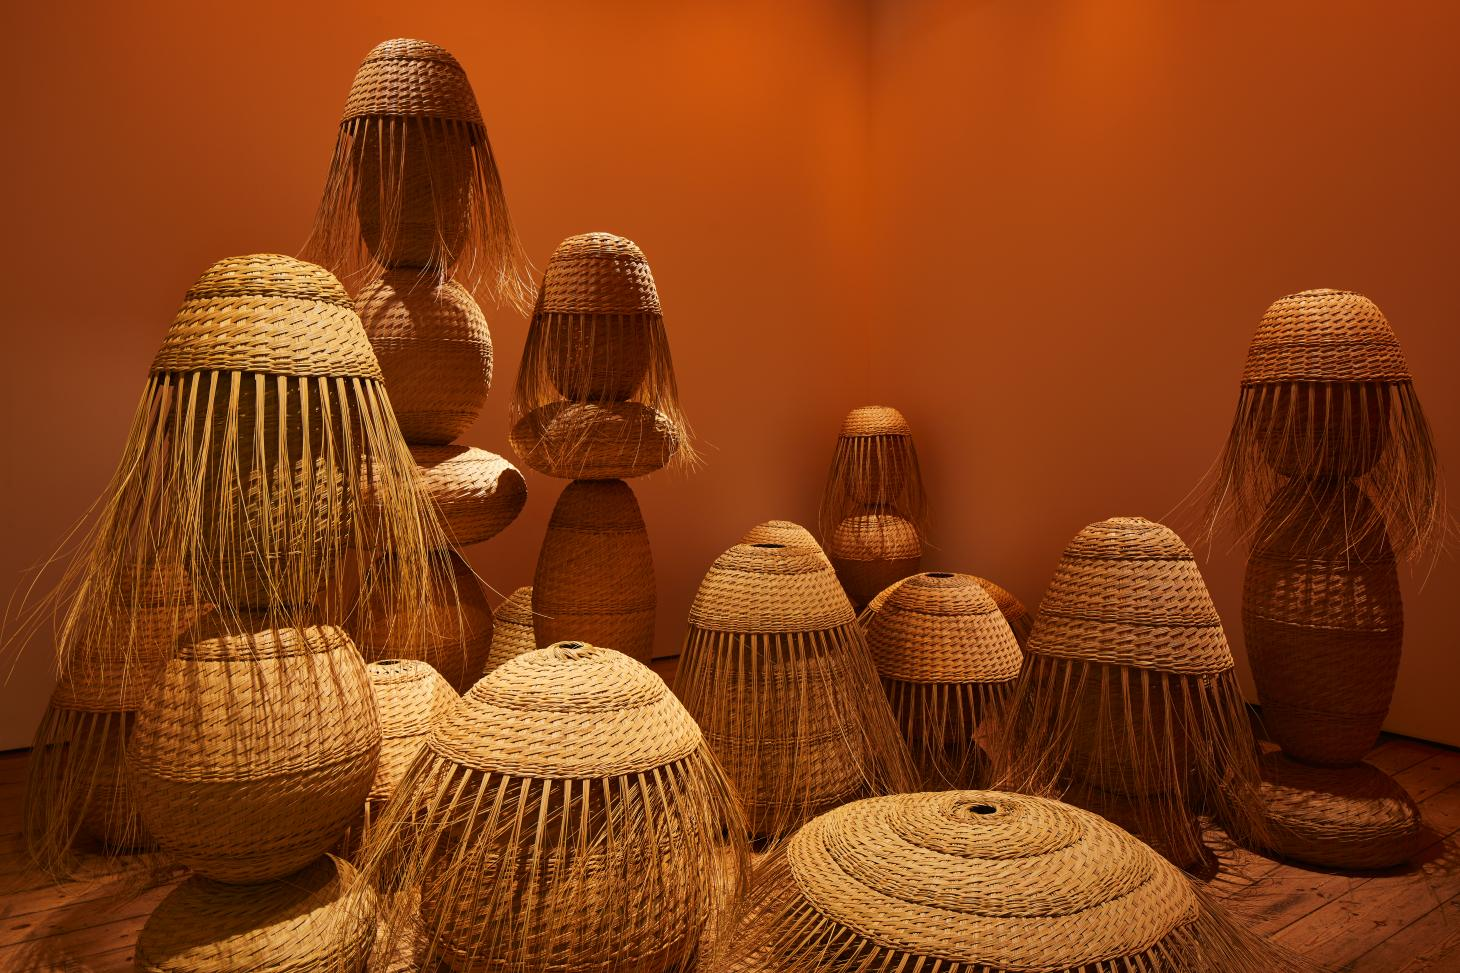 Argentina Pavilion at London Design Biennale featuring woven basket objects